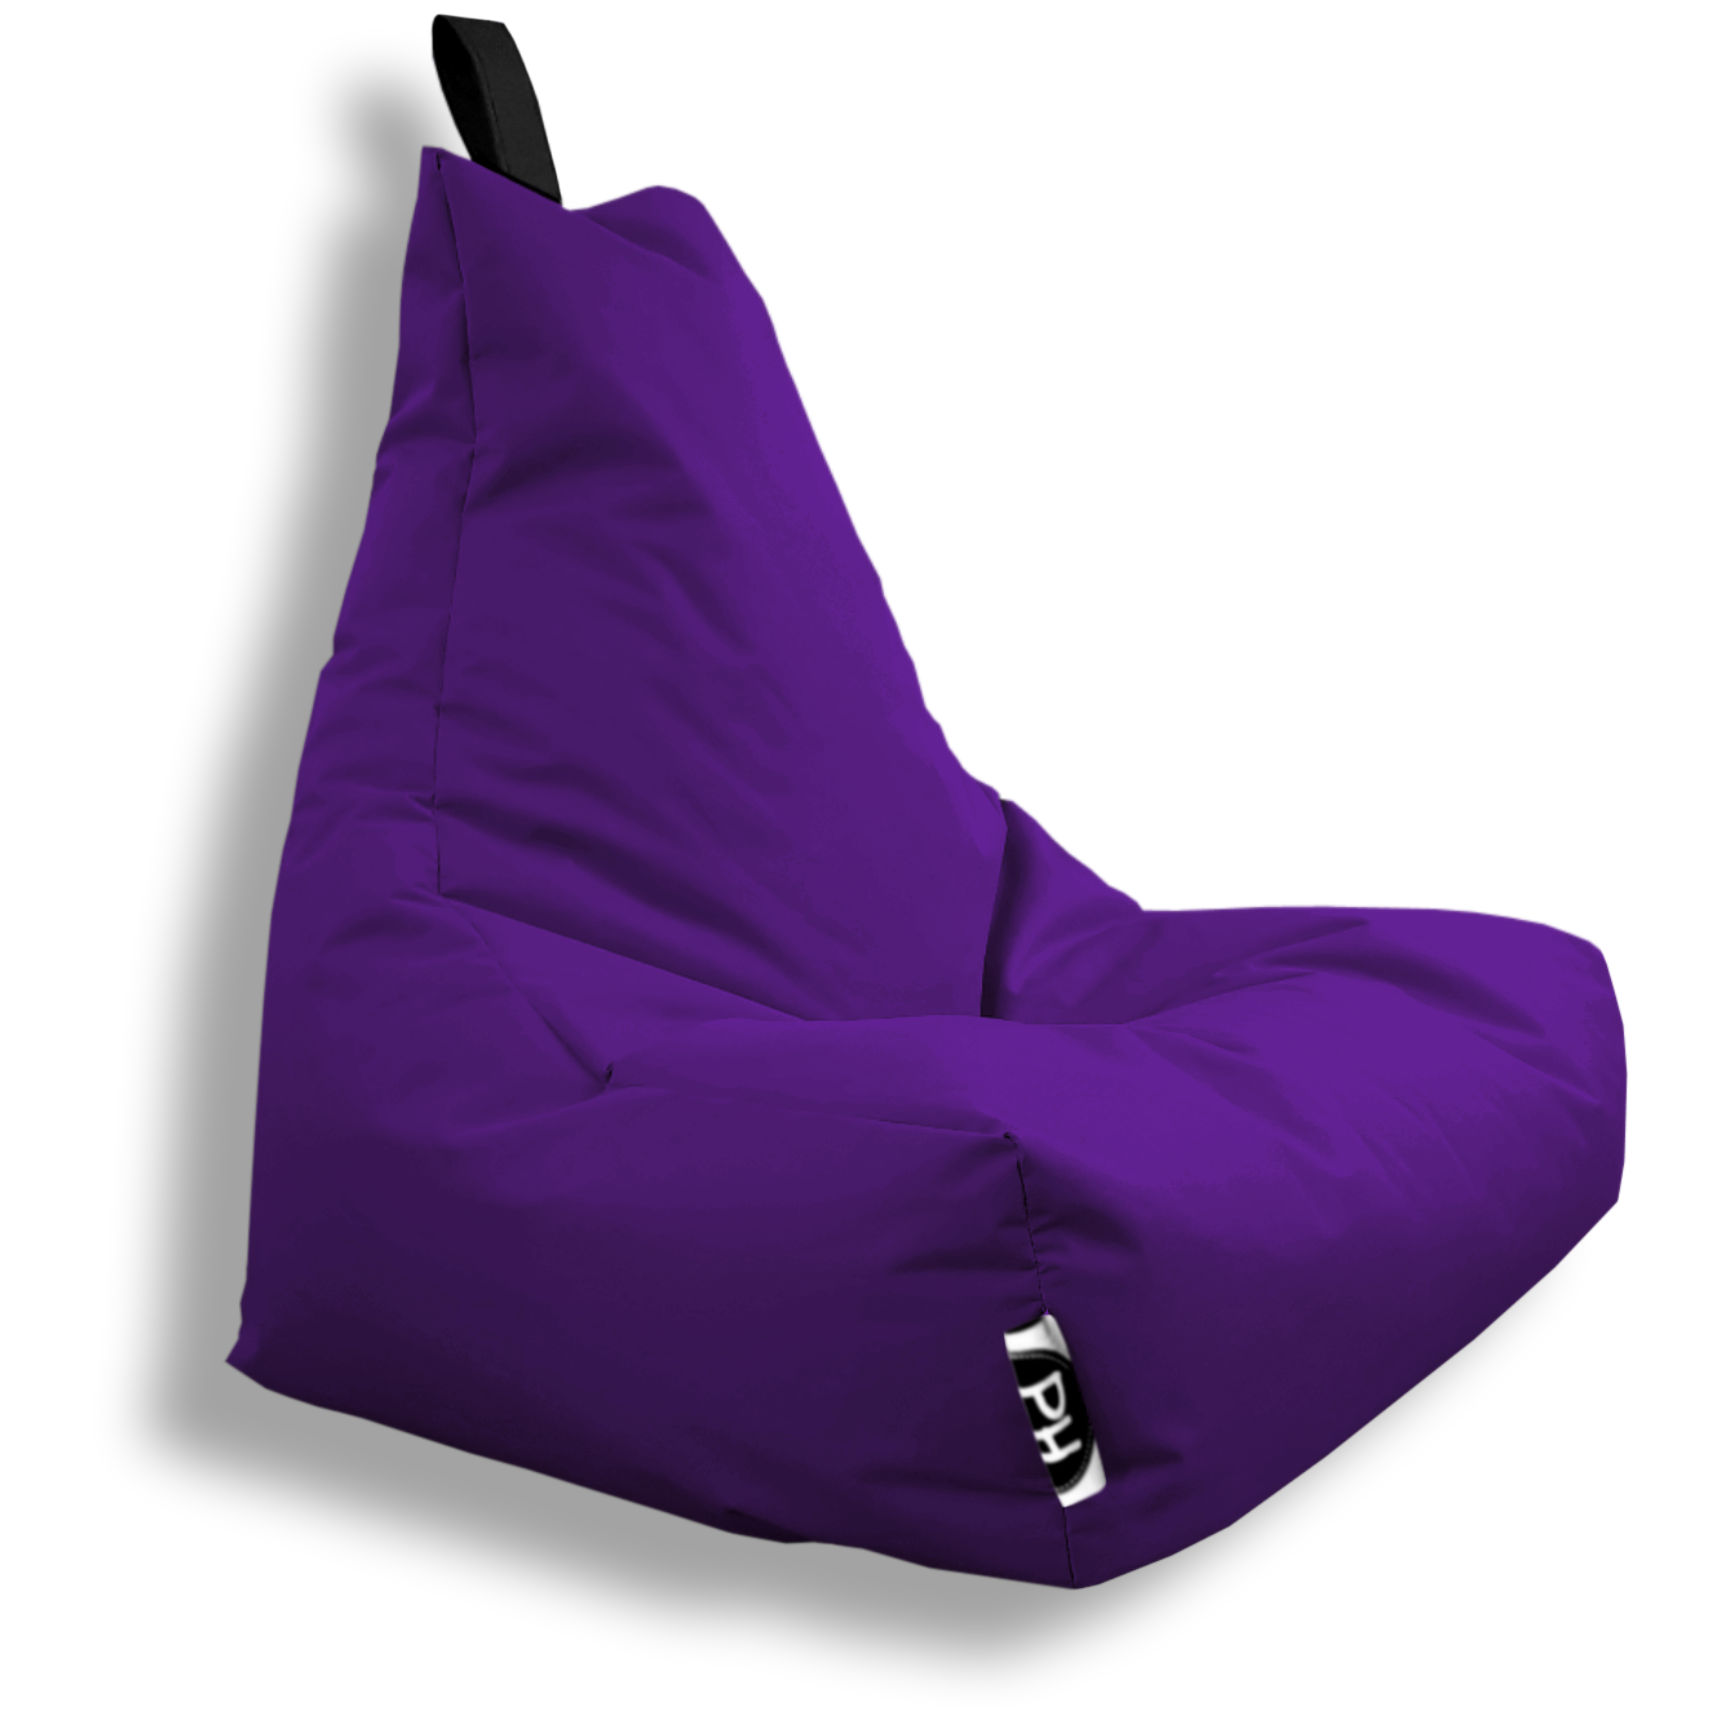 Lounge Sessel Lila Patchhome Lounge Sessel Gamer Sitzkissen In Diversen Farben 2